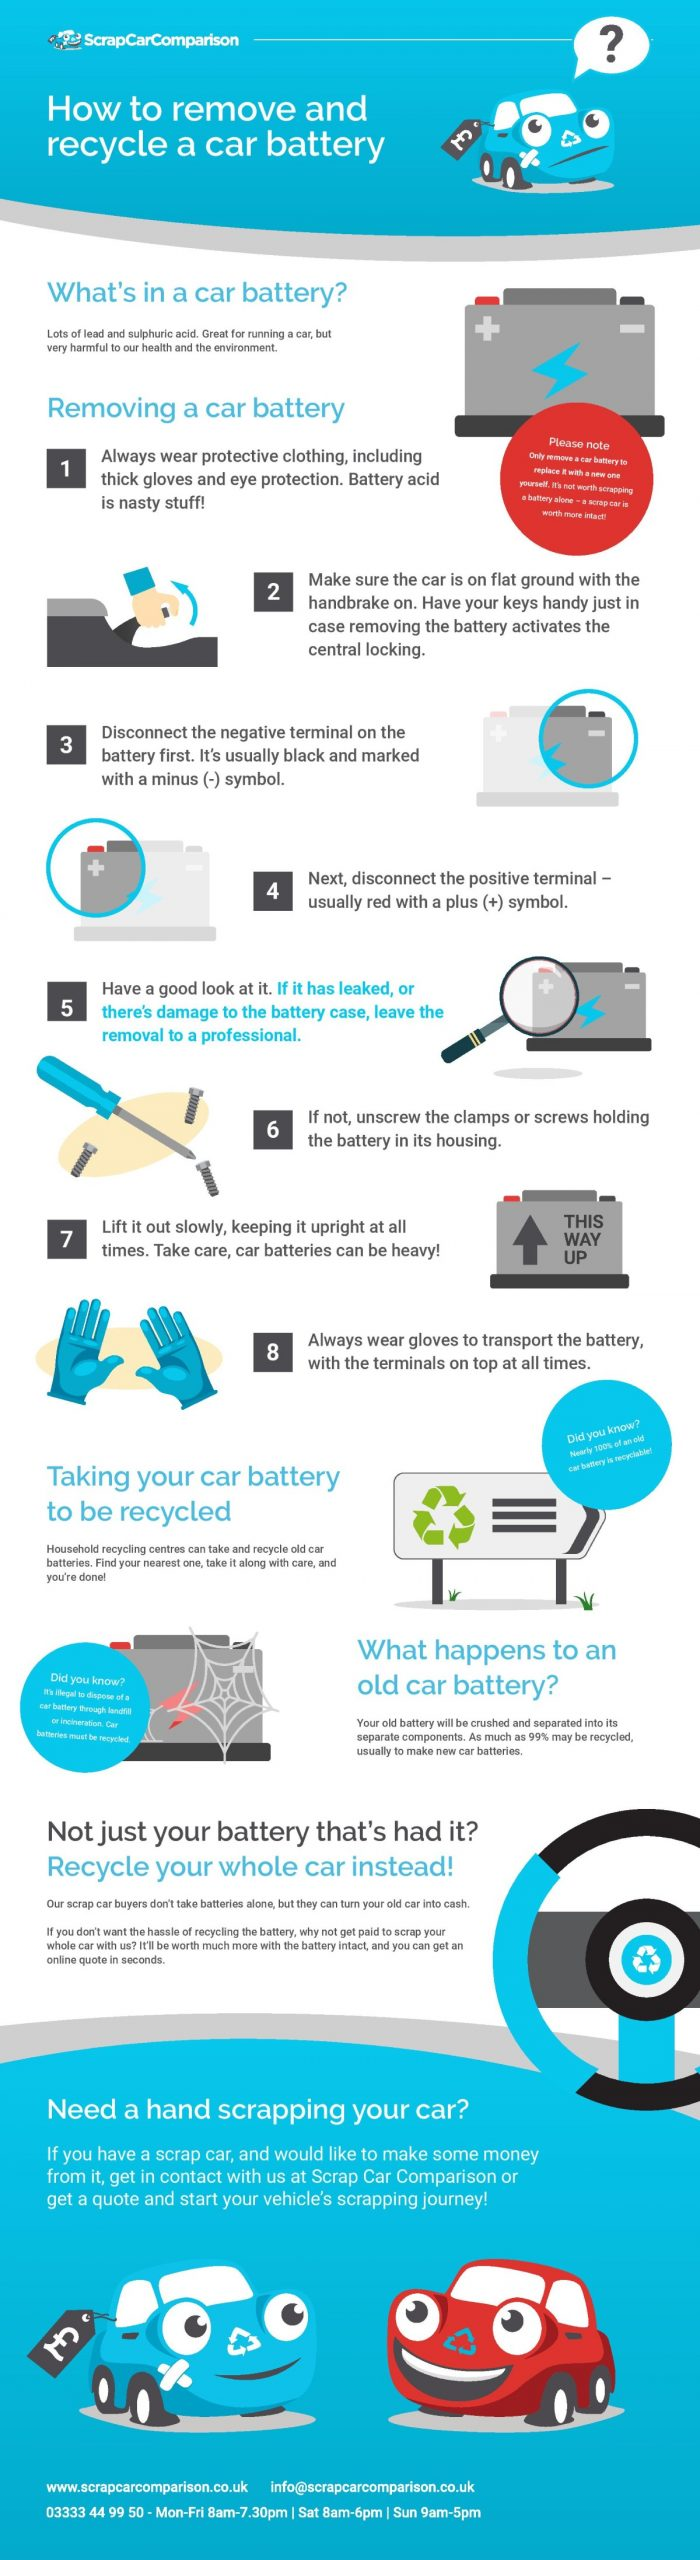 Guide to recycling a car battery